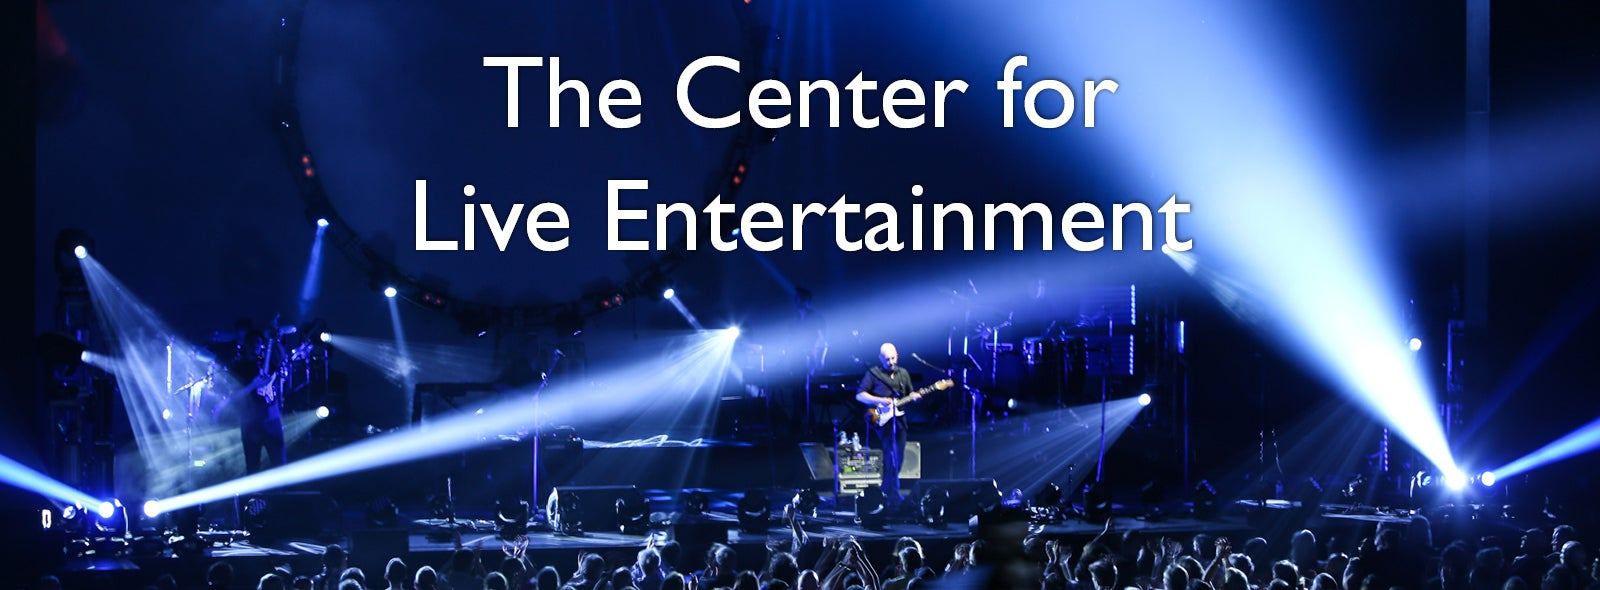 The Center for Live Entertainment